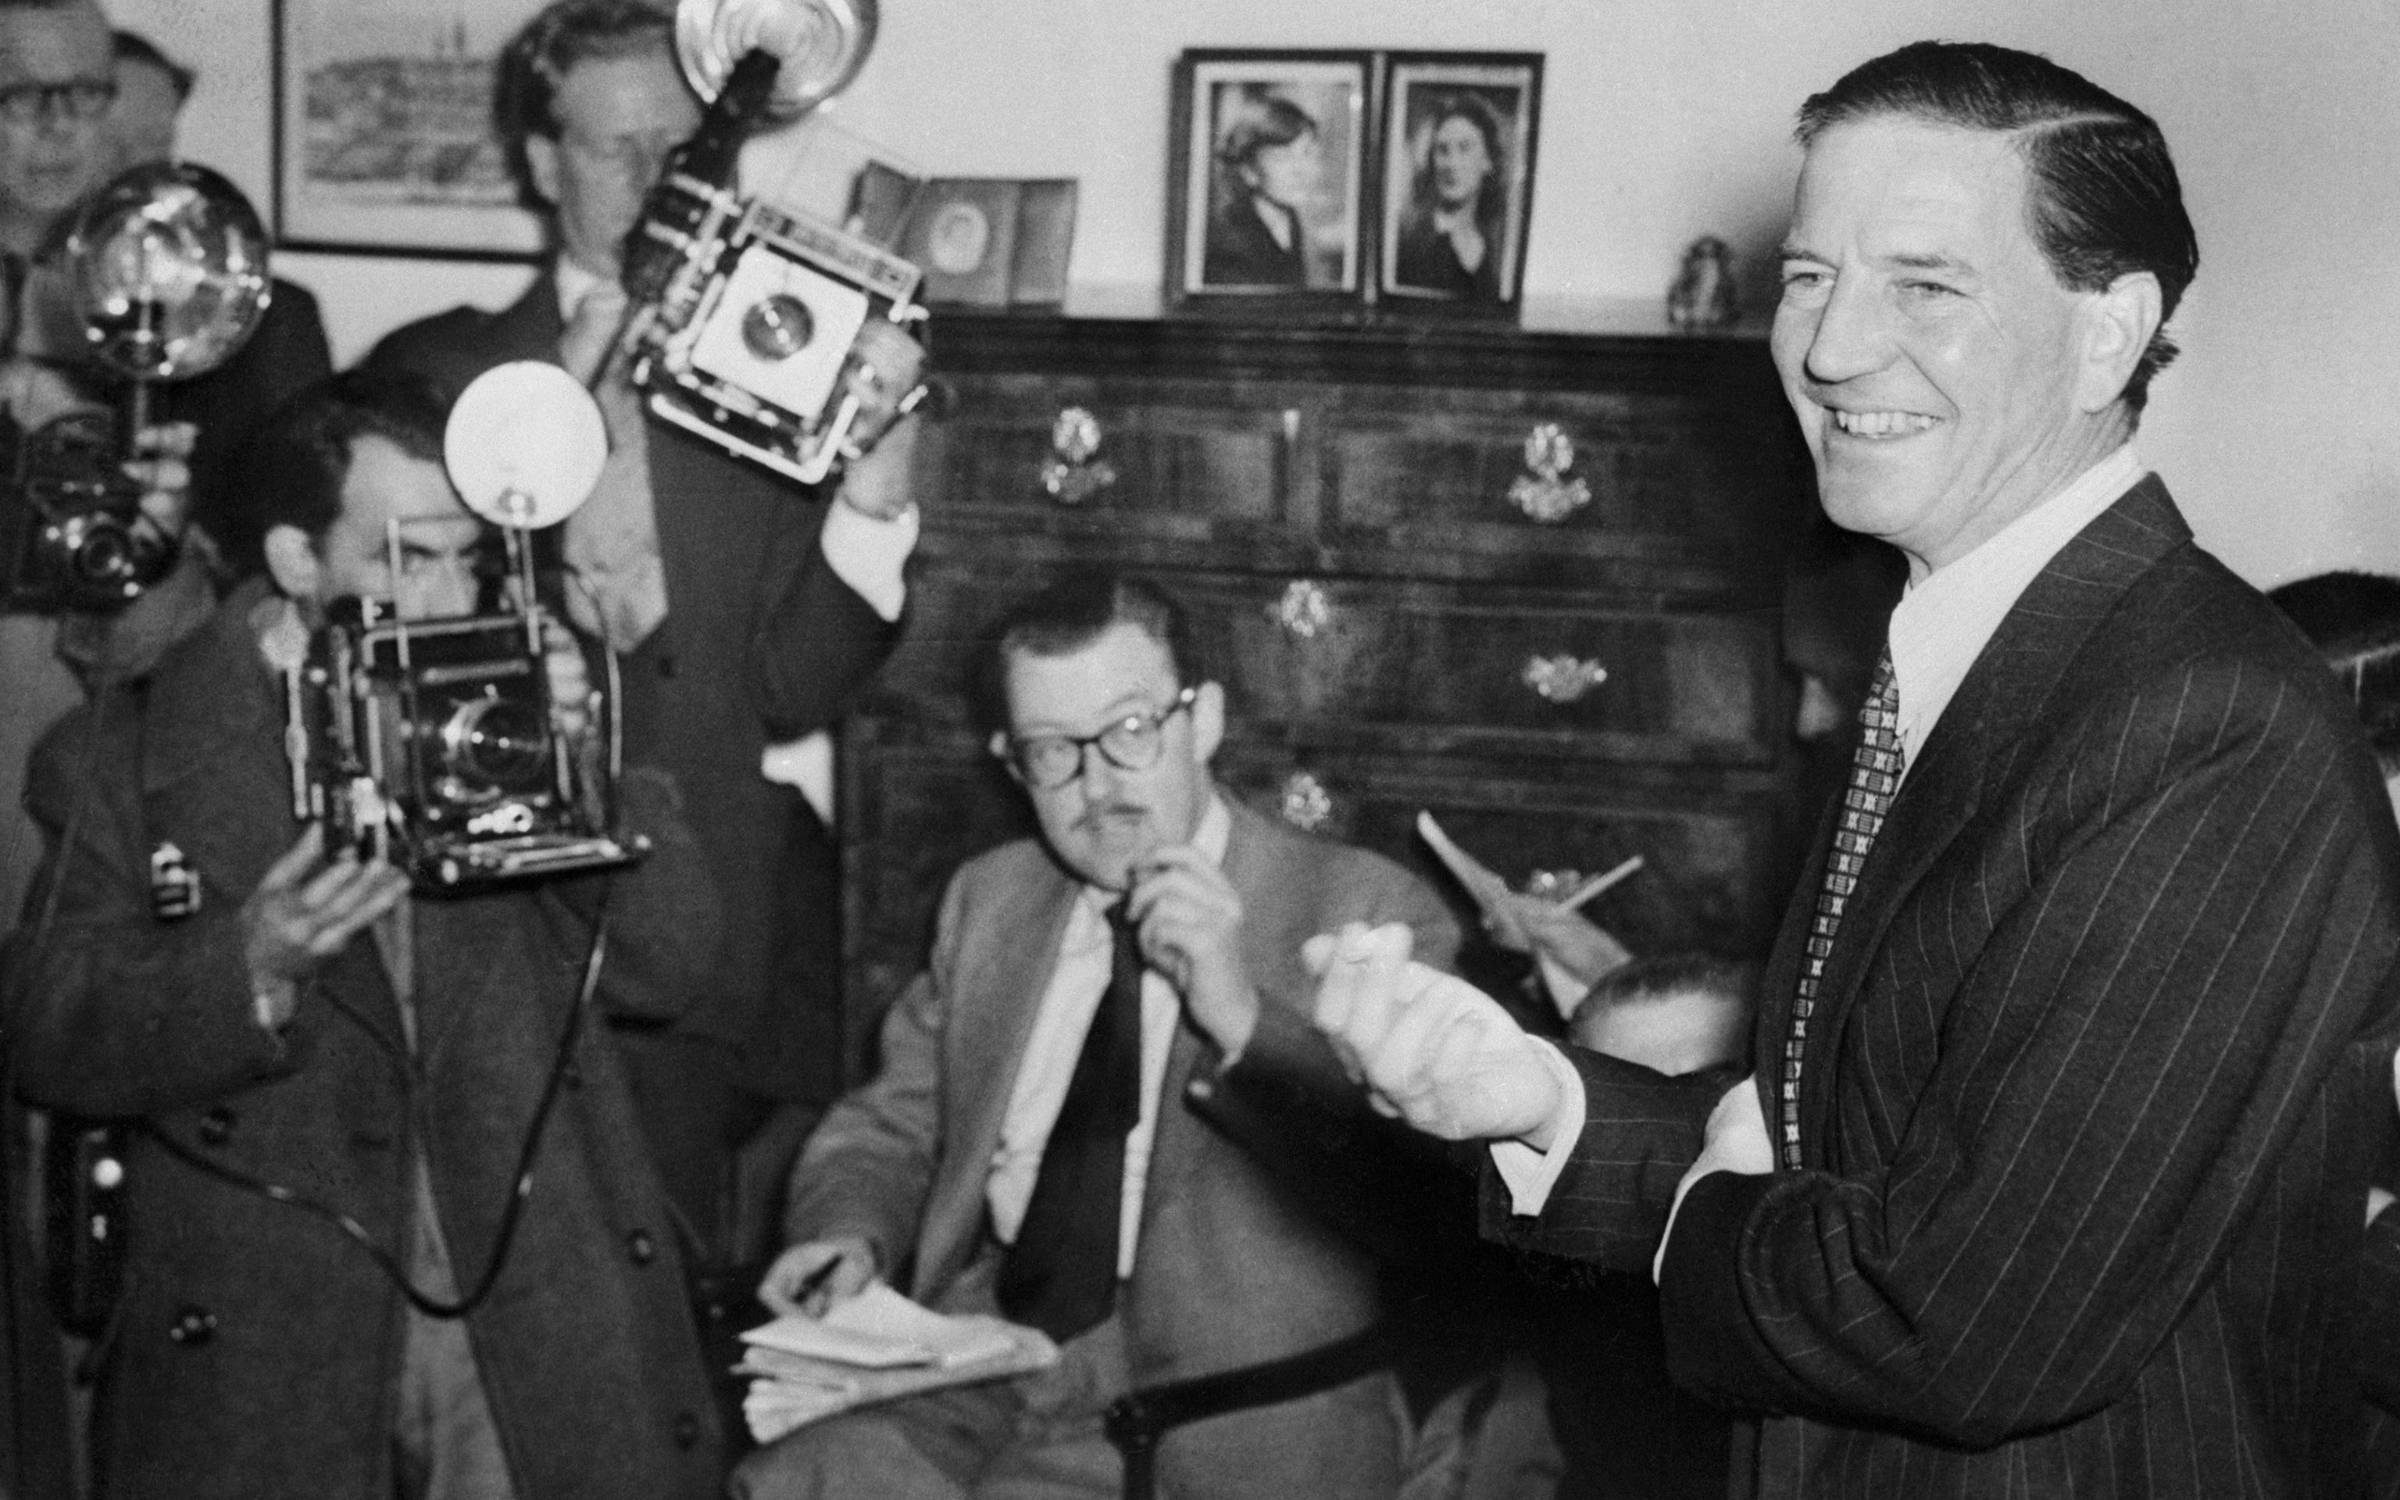 Harold ('Kim') Philby, a former British official in Washington, is shown at a press conference in London, at which he refuted charges of having been the mysterious Third Man in the Burgess-Maclean spy case. Credit: Bettmann